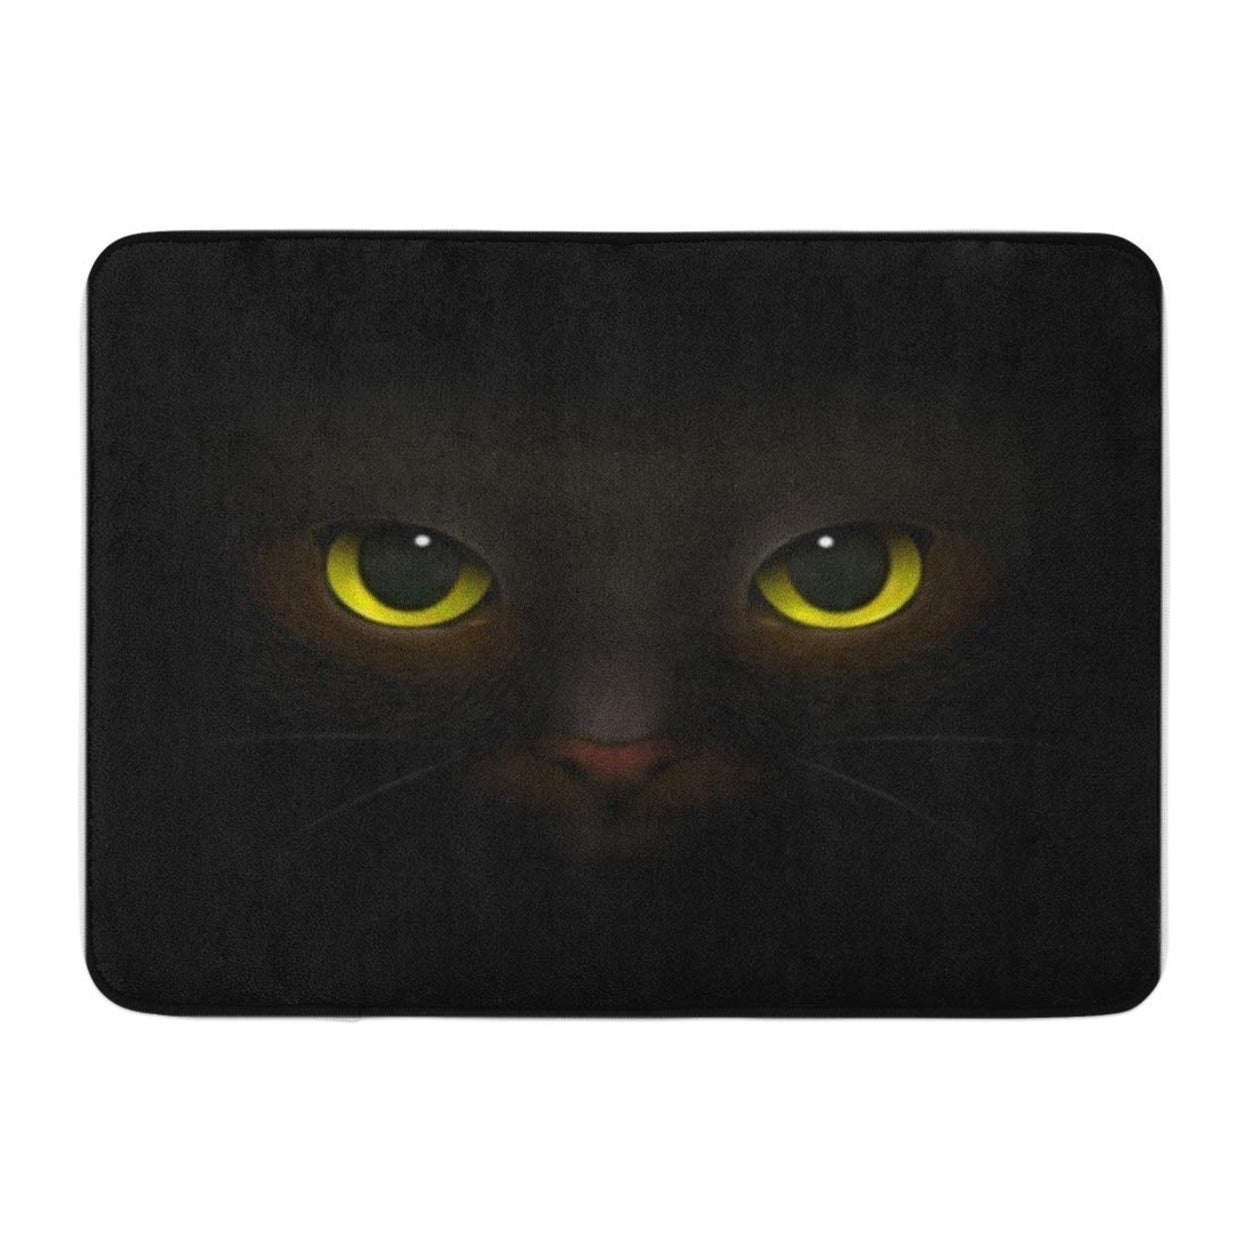 Shop Monsters Realistic Composition Feline Eyes And Nose Scary Doormat Floor Rug Bath Mat 23 6x15 7 Inch Multi On Sale Overstock 31776942